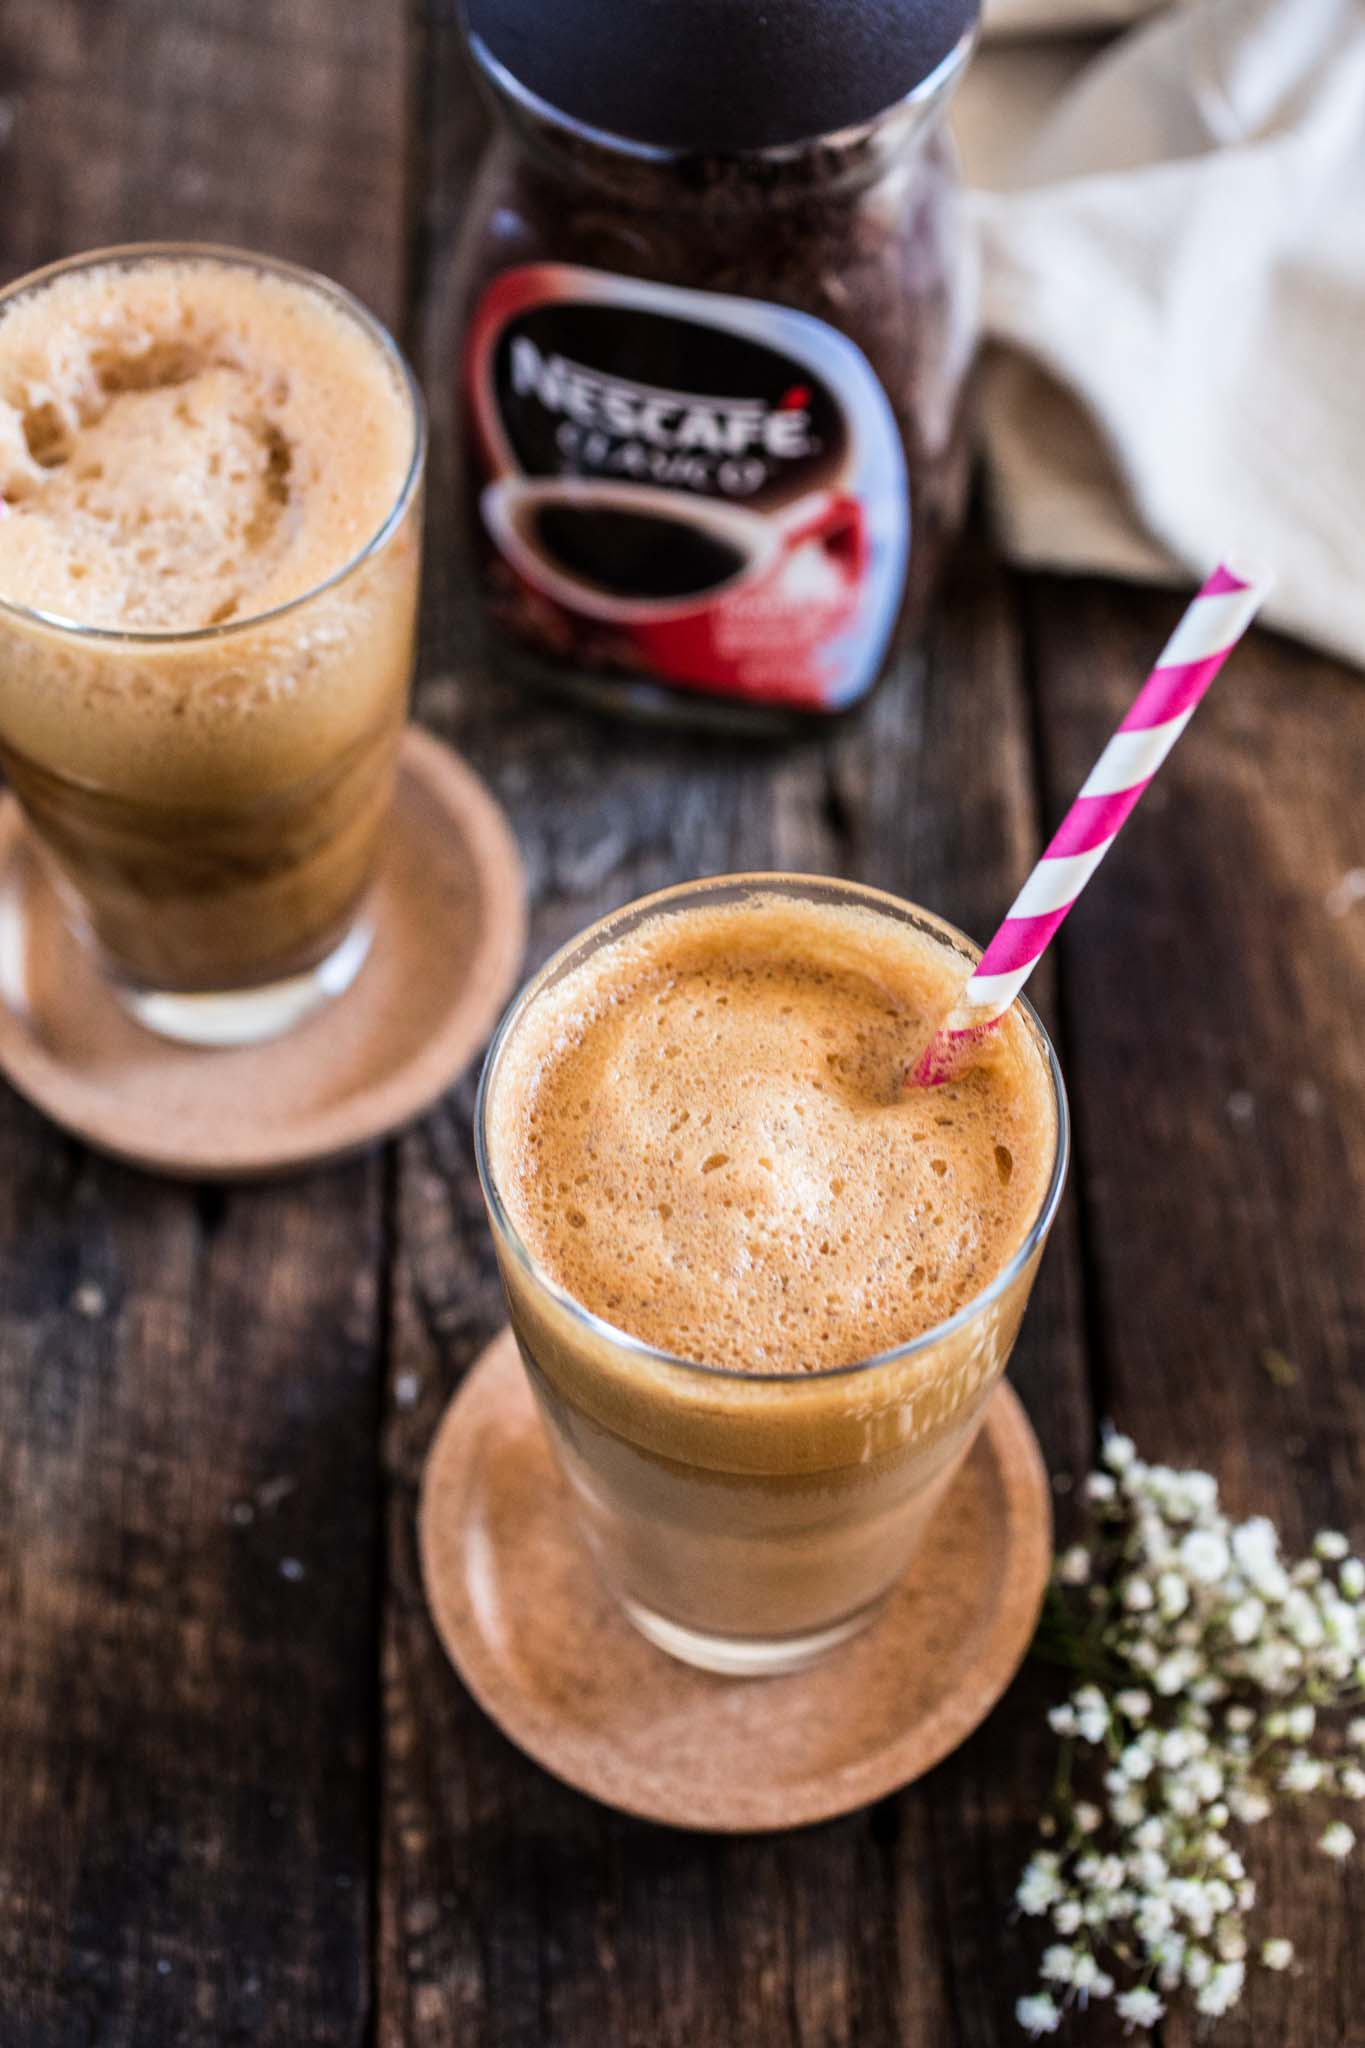 Greek Frappe   www.oliviascuisine.com   The hallmark of outdoor Greek coffee culture, the Frappe is a great caffeinated call for those hot summer days! ☀️ (In partnership with NESCAFÉ.)